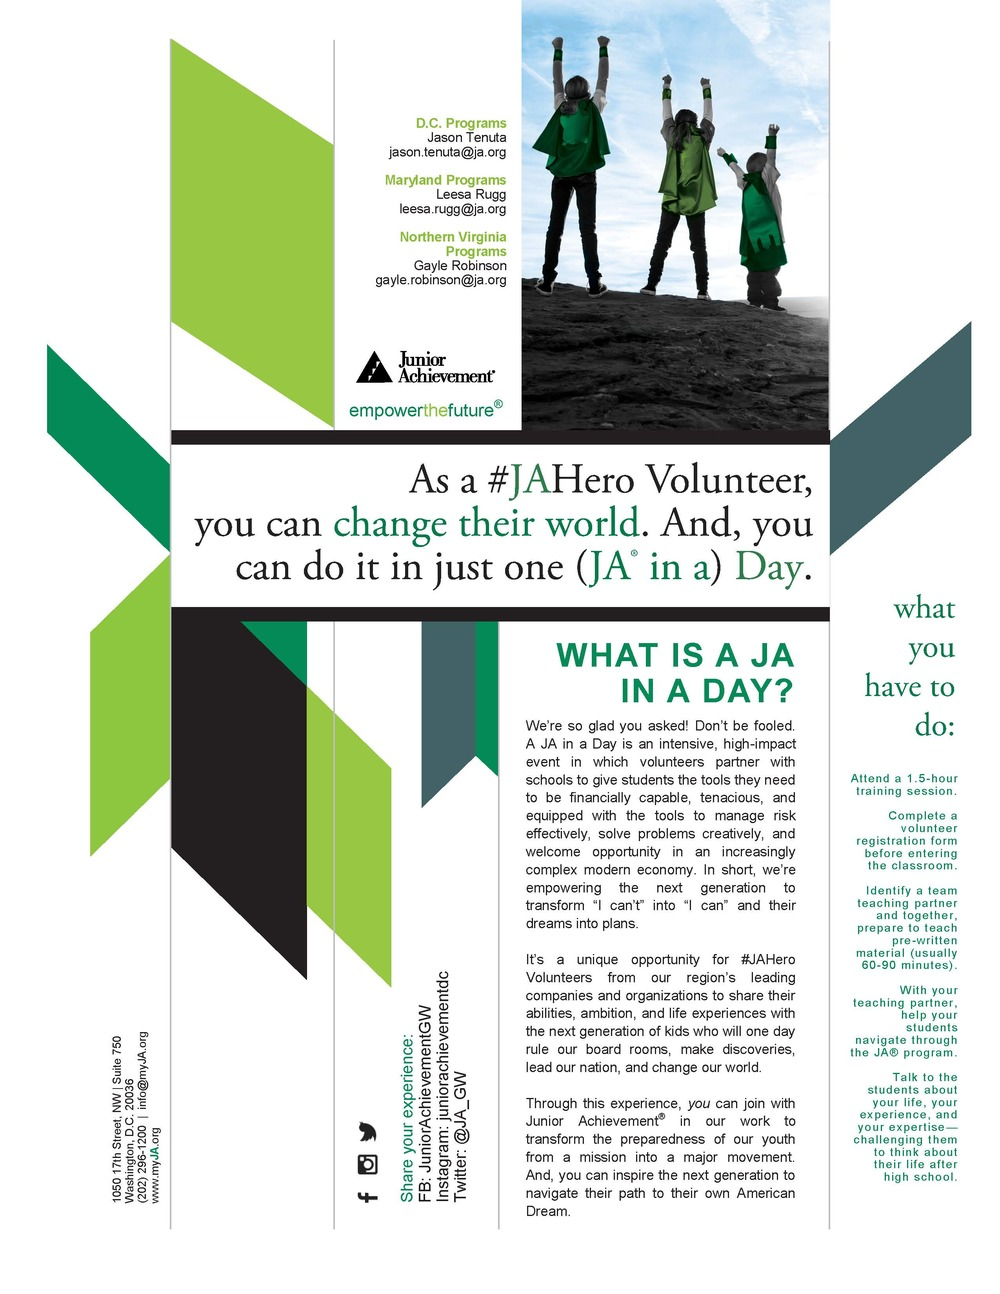 marketing junior achievement of greater washington junior achievement ja in a day 2016 17 jpg